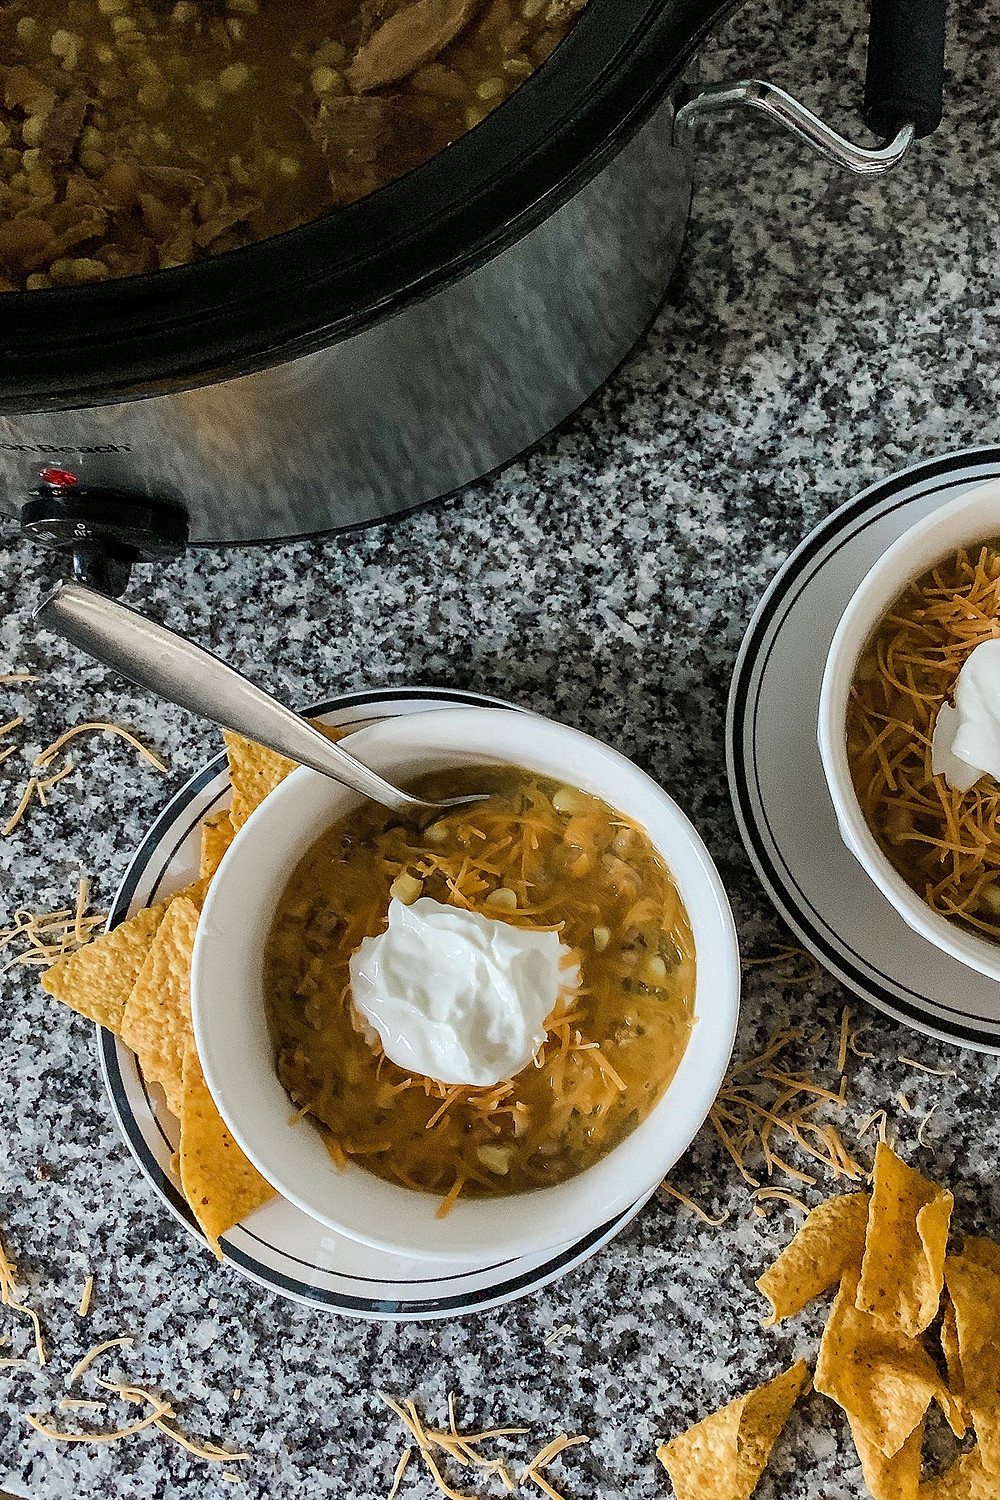 Green turkey chili, crockpot recipe, slow cooker recipe, slow cooker chili, crockpot chili, super bowl chili, winter meal, easy weeknight meal, easy weekend meal, slow cooker meal, healthy chili recipe, easy chili recipe, easy dinner recipe, what to make for dinner, comfort food recipe, favorite chili recipe, healthy slow cooker recipe, chili topping ideas, what to make for a crowd, crown pleaser recipe, super bowl meal, super bowl recipe, super bowl idea, healthy dinner recipe, slow cooker dump recipe